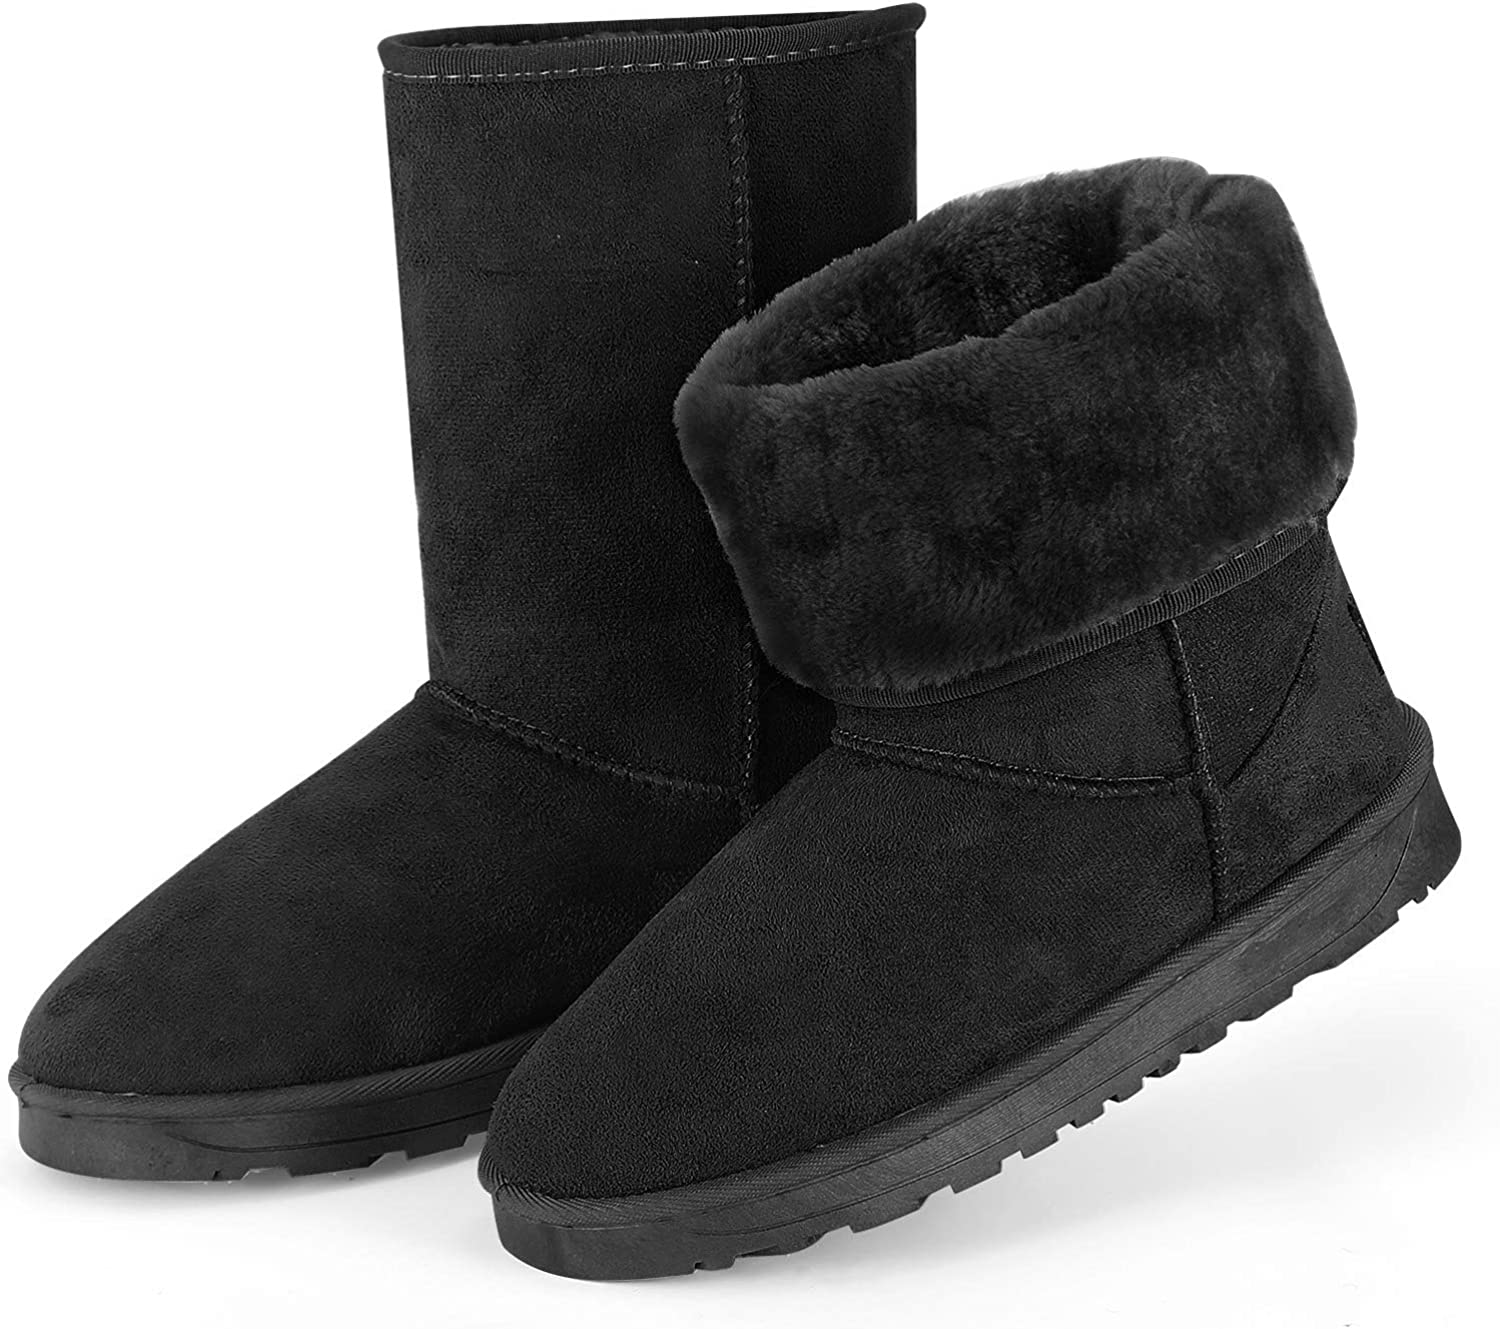 Max 54% OFF TeqHome Winter Ranking TOP2 Boots for Women Classic Mid-Calf Warm Snow